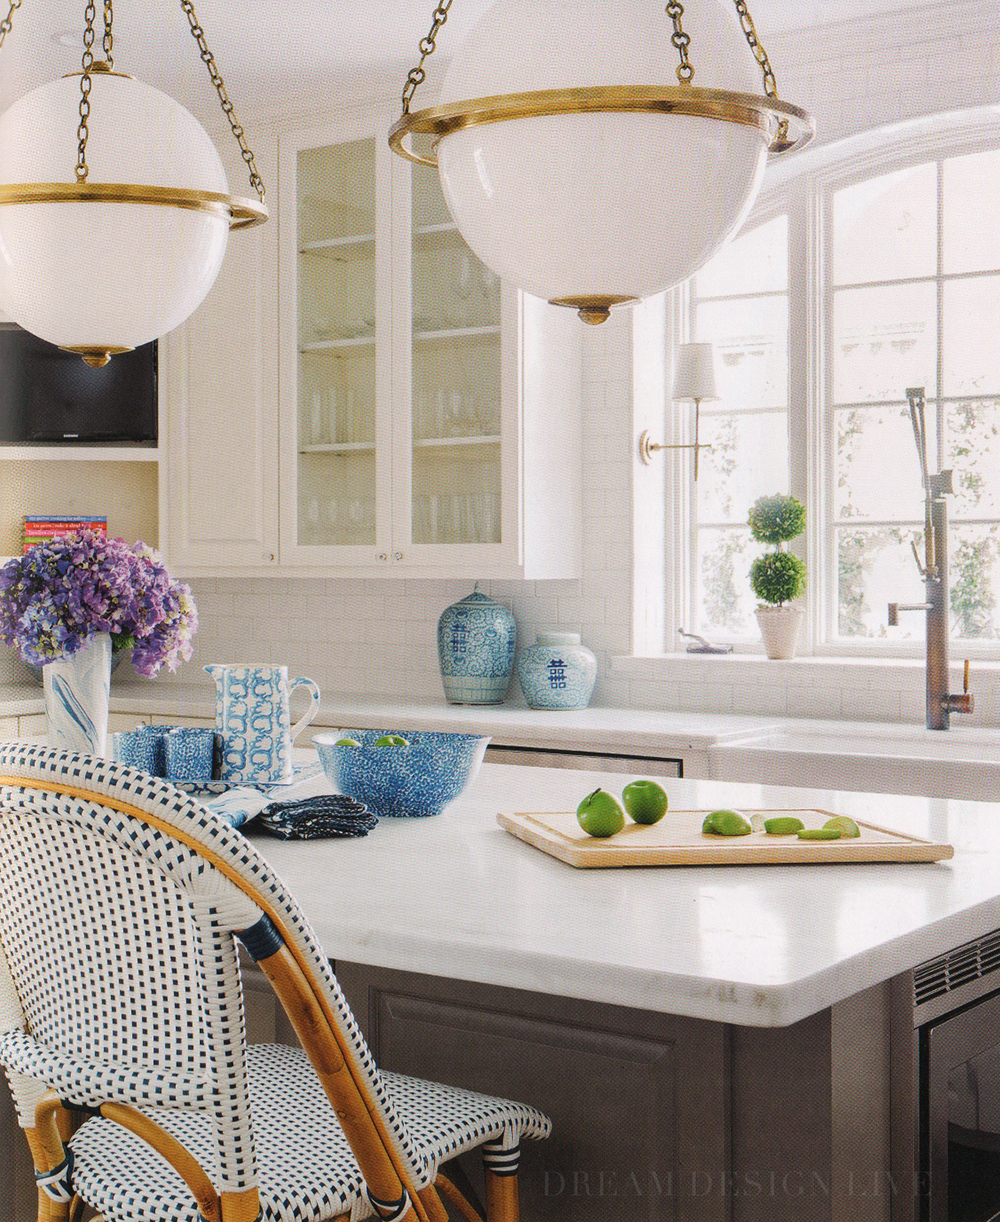 Gorgeous blue and white kitchen from Dream Design Live, Paloma Contreras' fantastic new interior design book